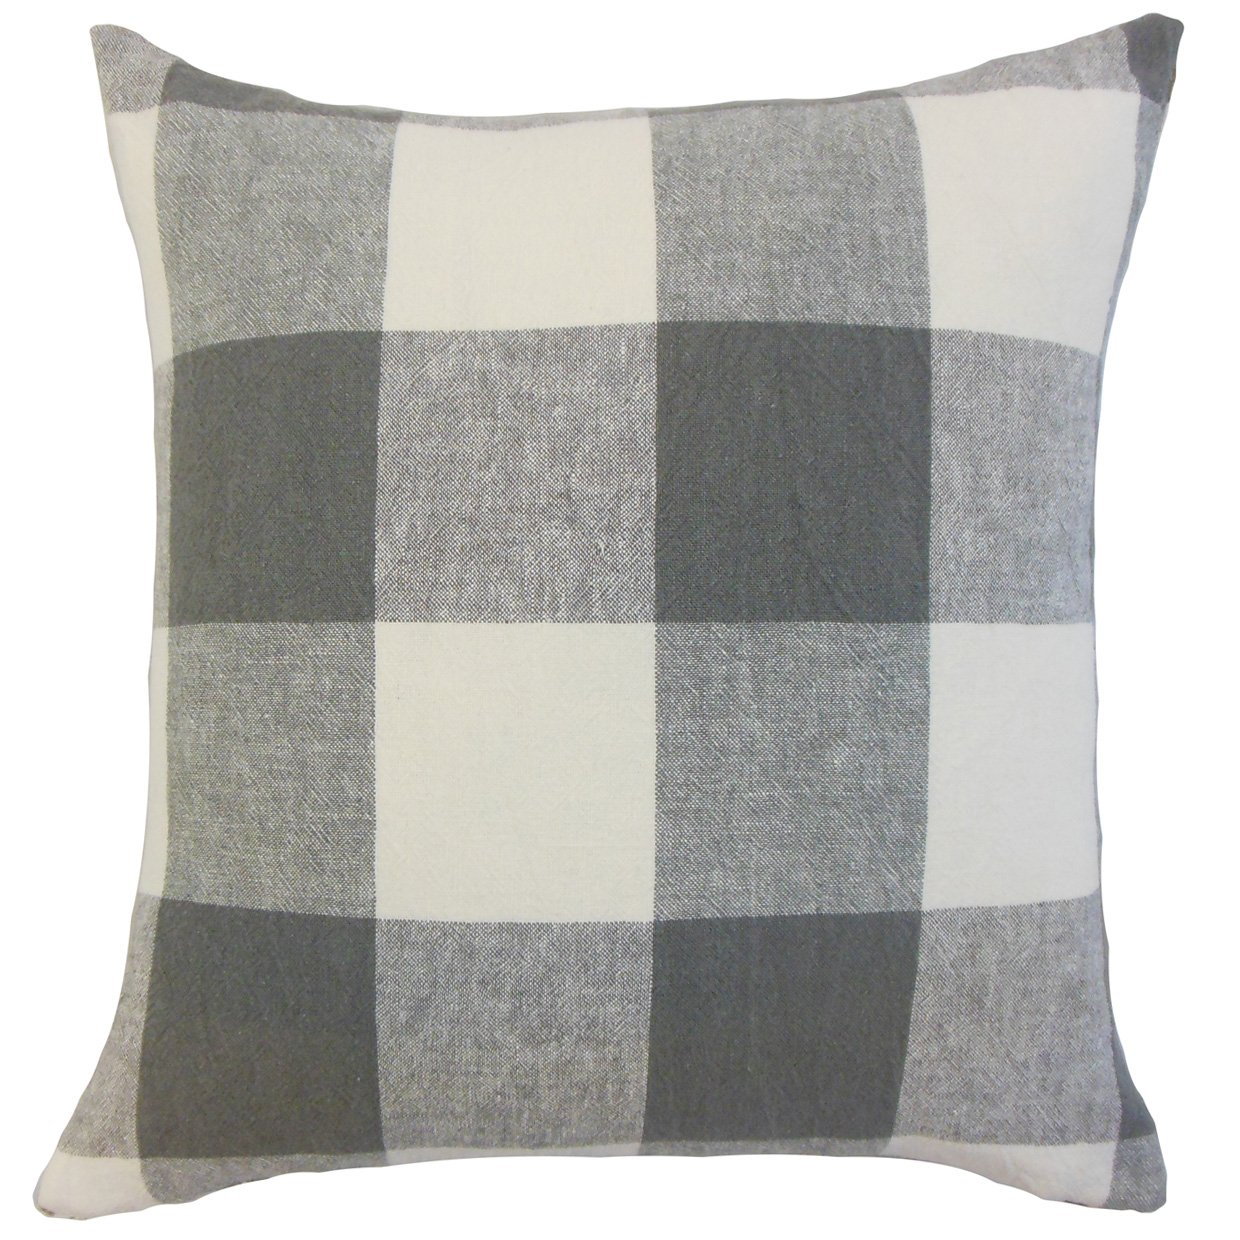 The Pillow Collection Amory Plaid Bedding Sham Coal Standard//20 x 26